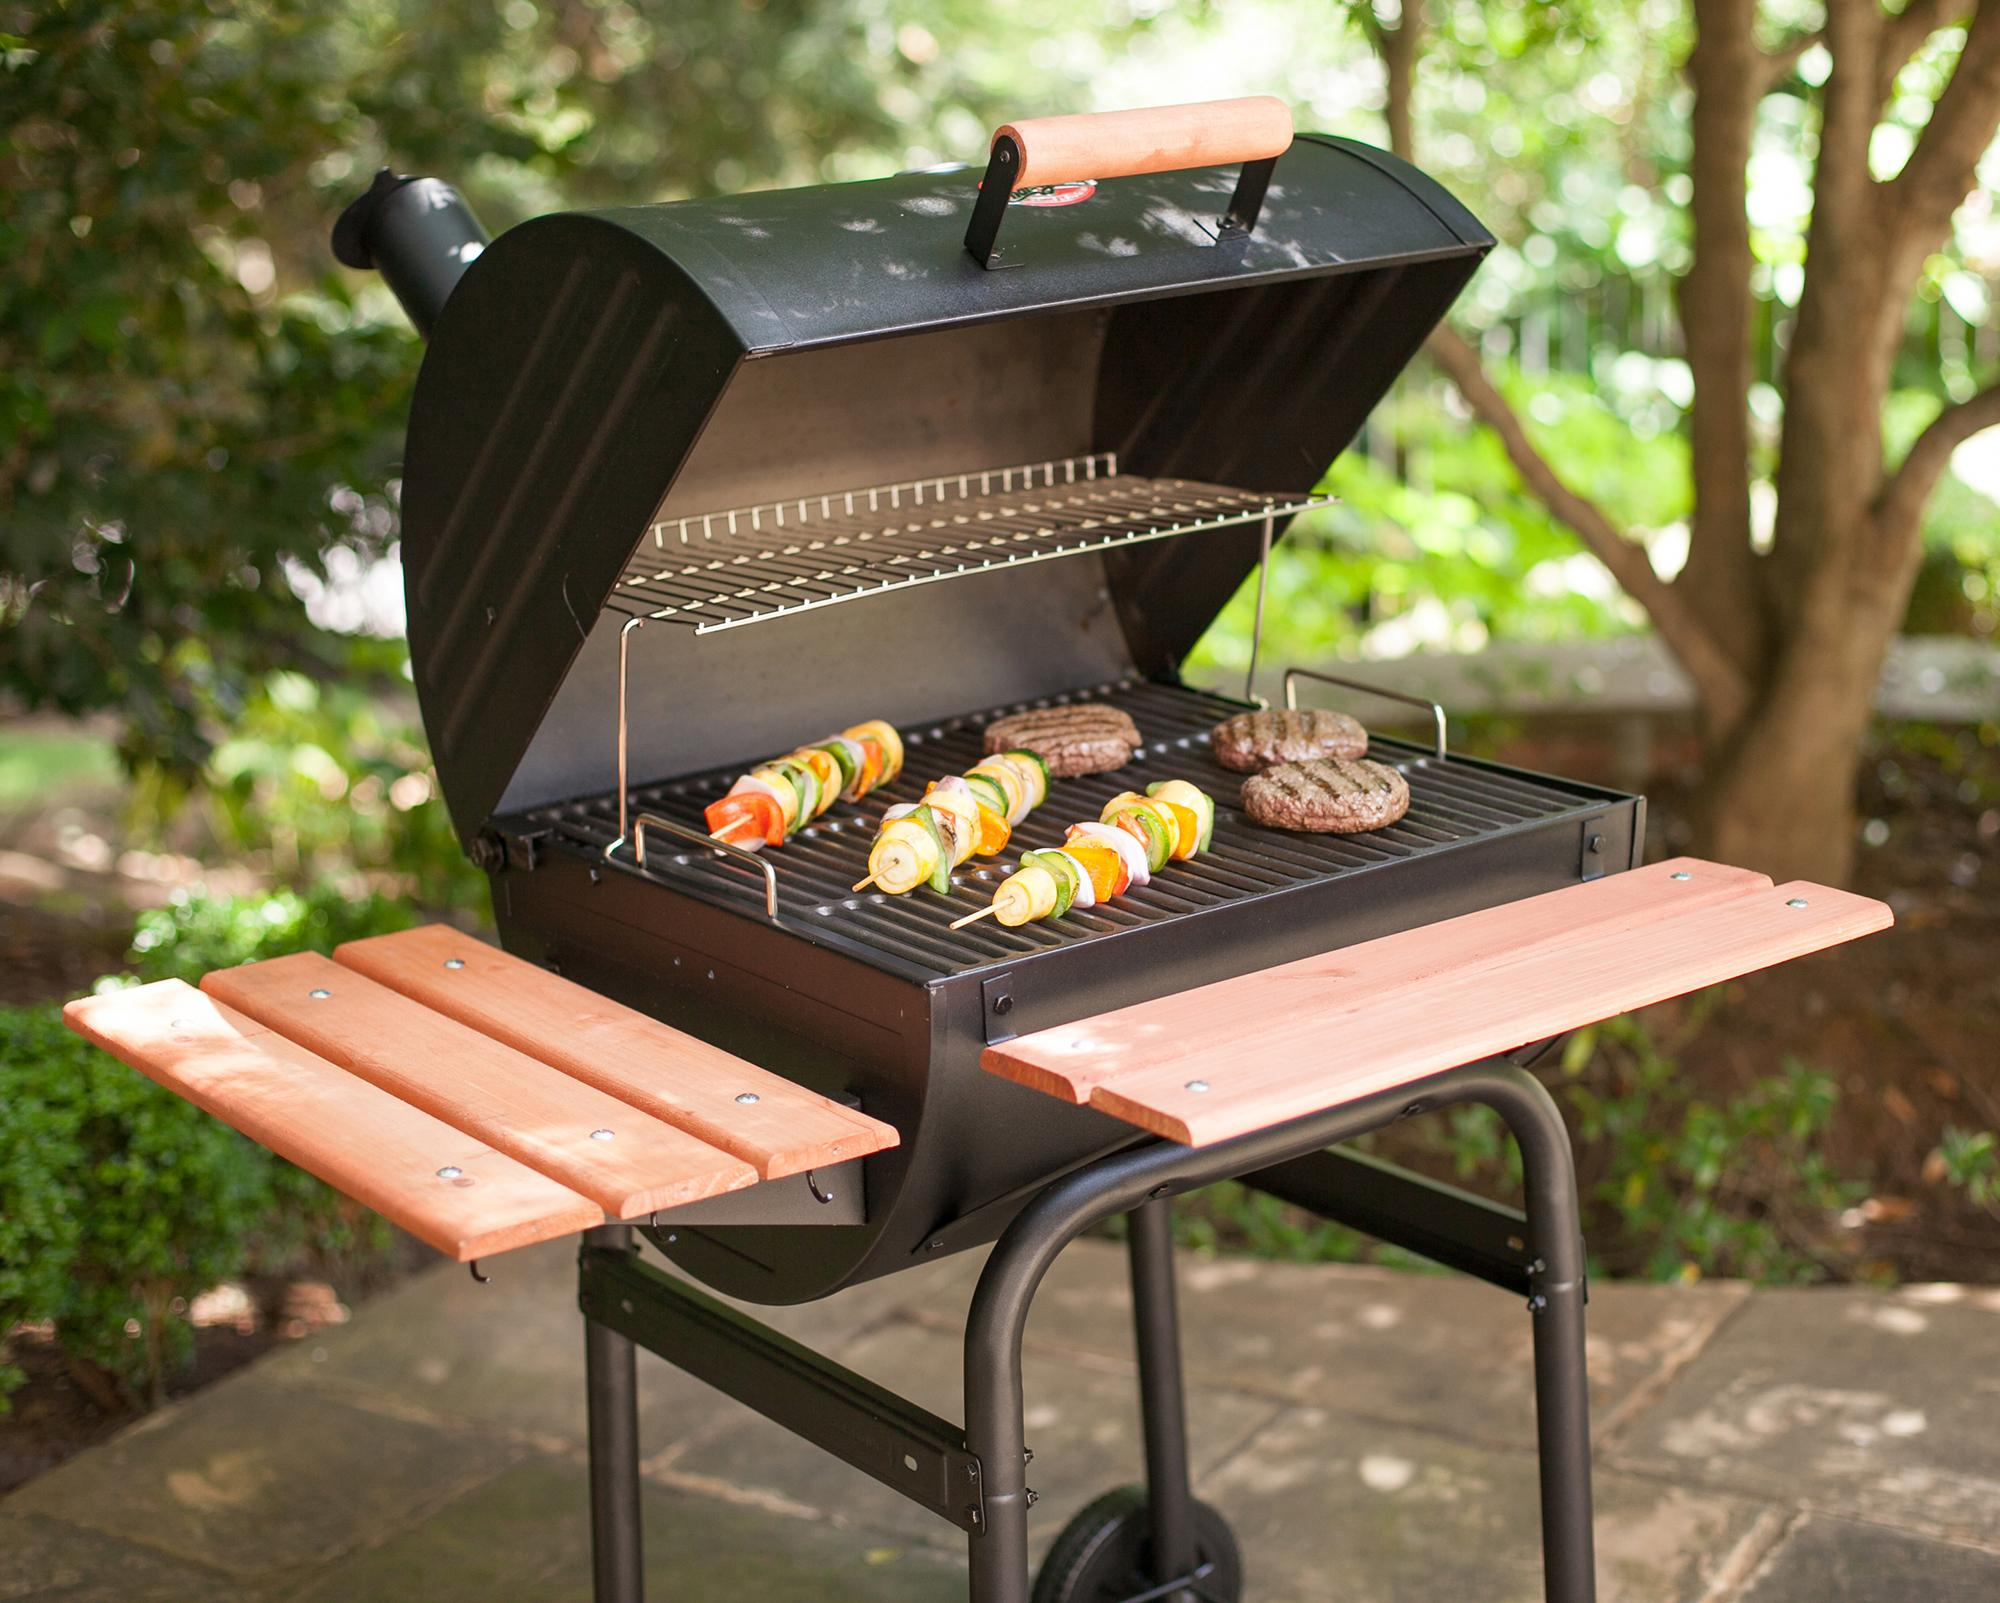 Char-Griller, grill